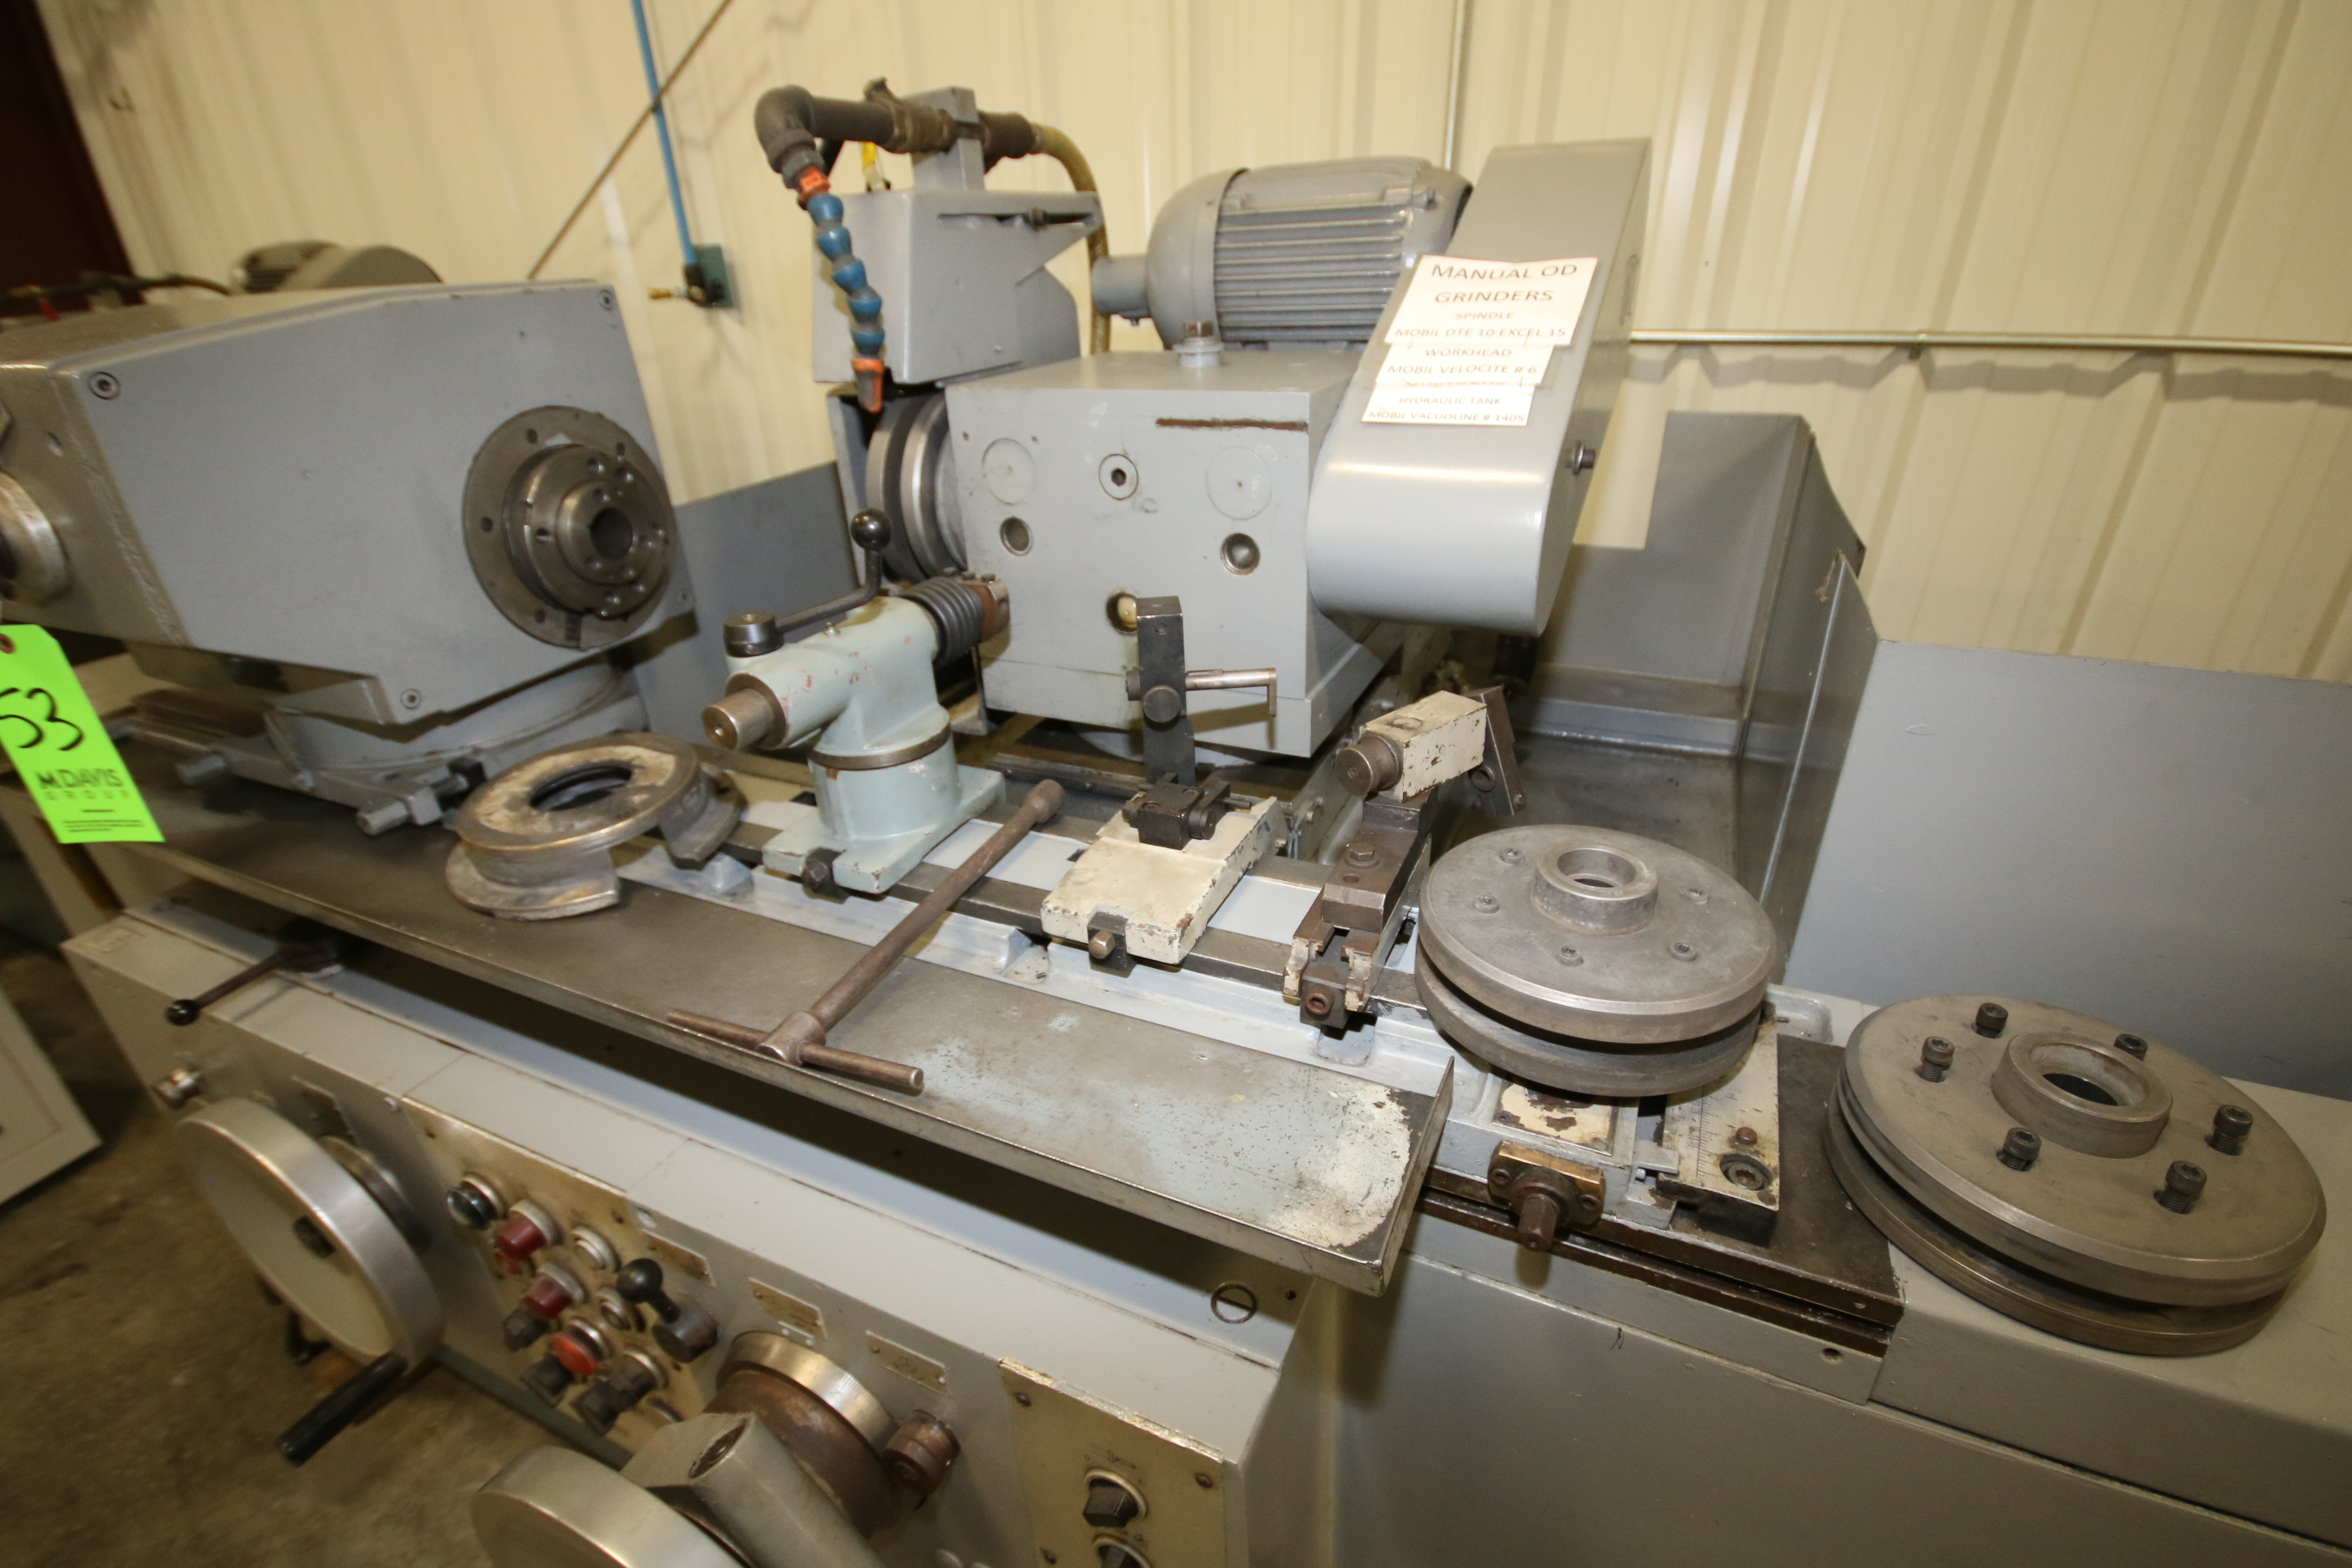 Lot 53 - Cincinnati Milacron 10x31 OD Grinder, Type R-75, S/N 27271, 440 V, 3 Phase with Wheel Hubs (3);